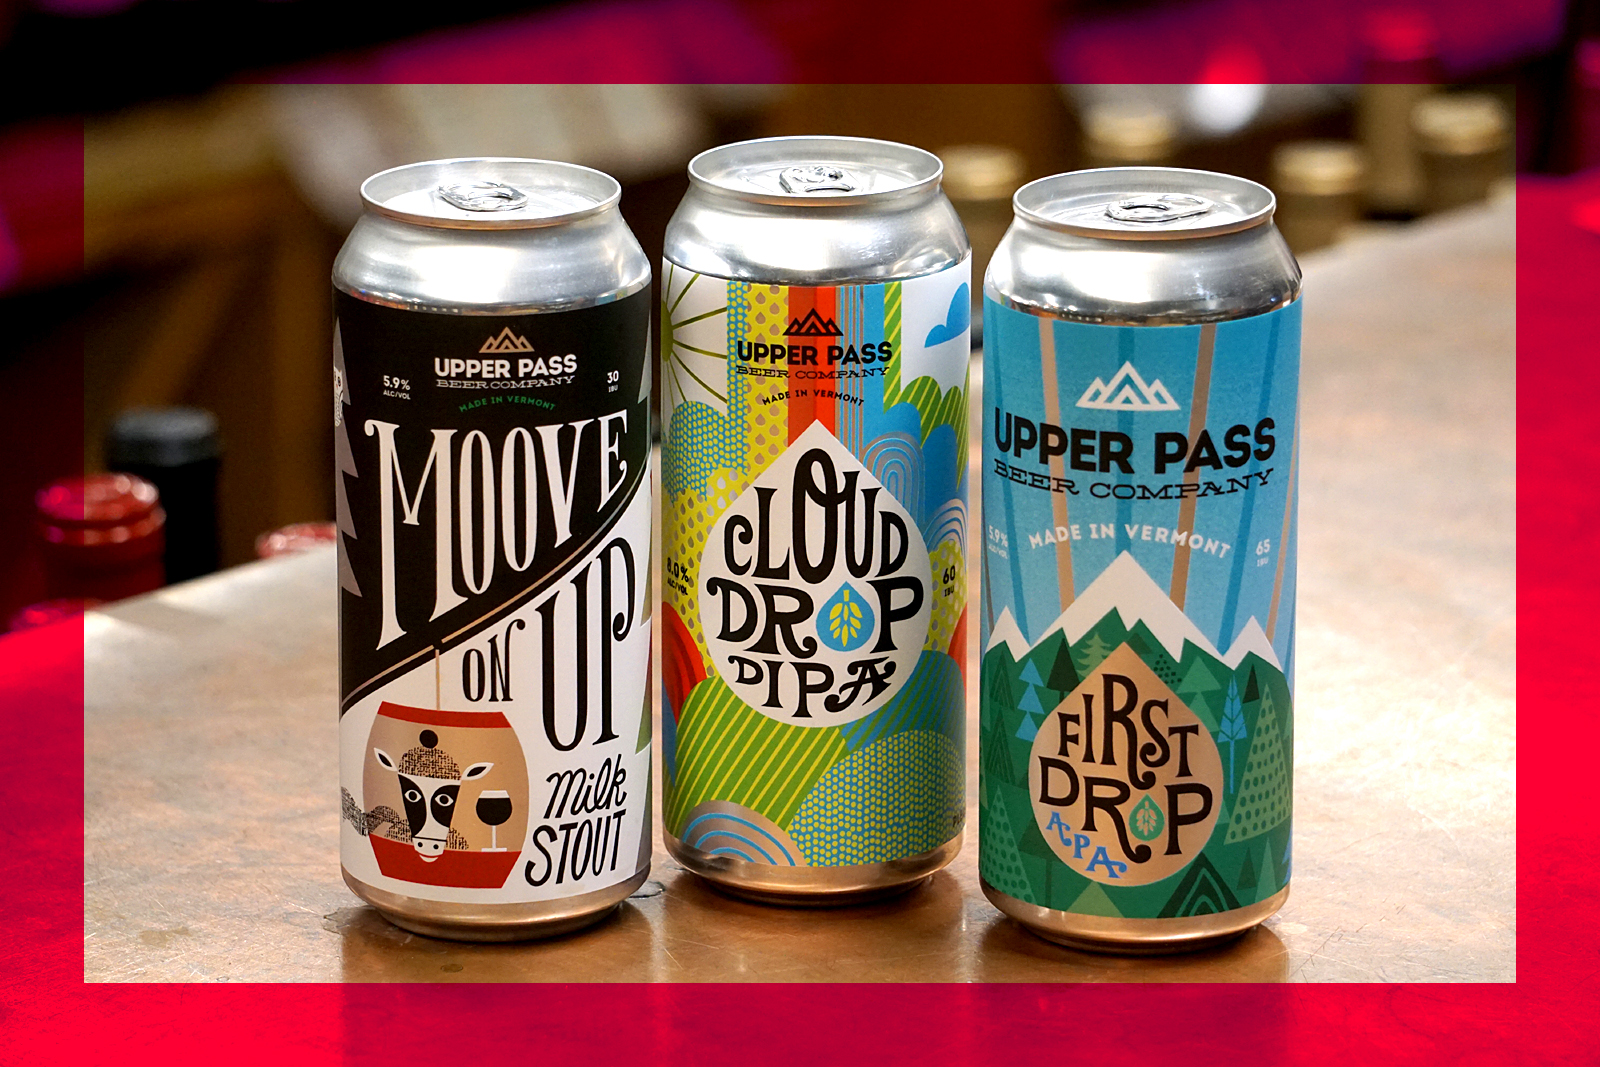 Upper Pass | Cloud Drop DIPA | First Drop APA | Moove On Up Milk Stout | Beverage Warehouse VT